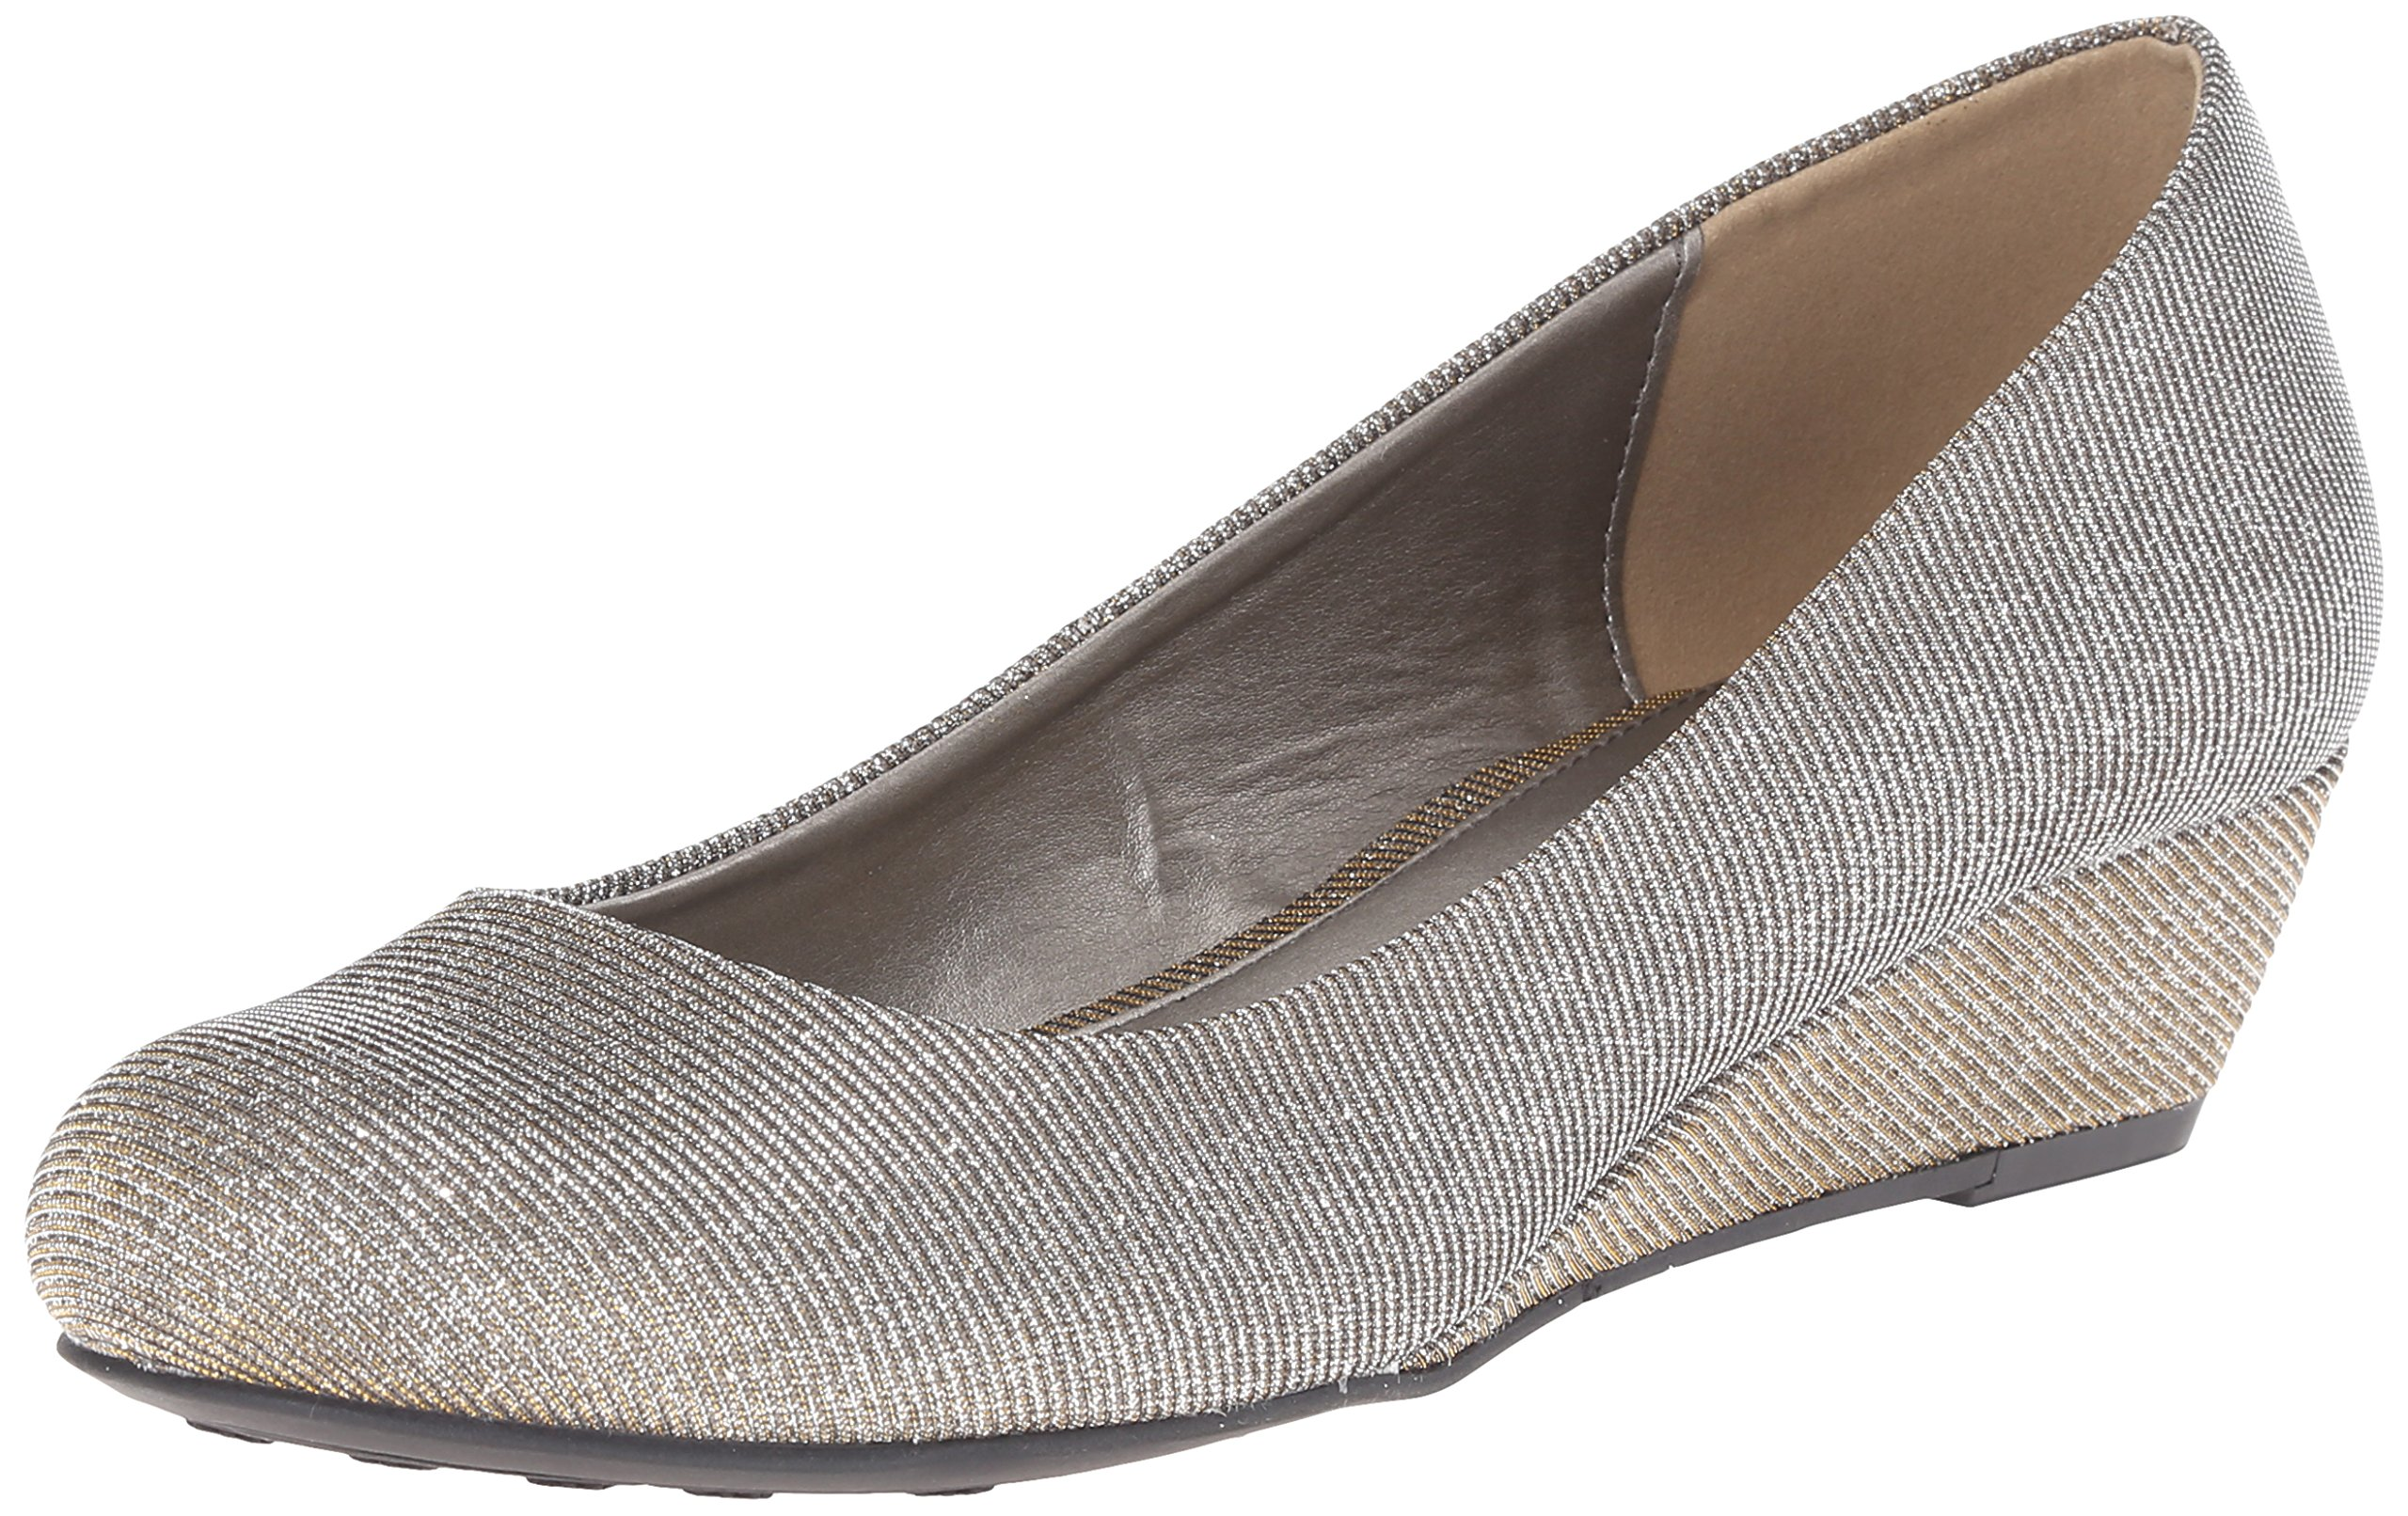 CL by Chinese Laundry Women's Marcie Wedge Pump, Champagne Twilight, 6.5 M US